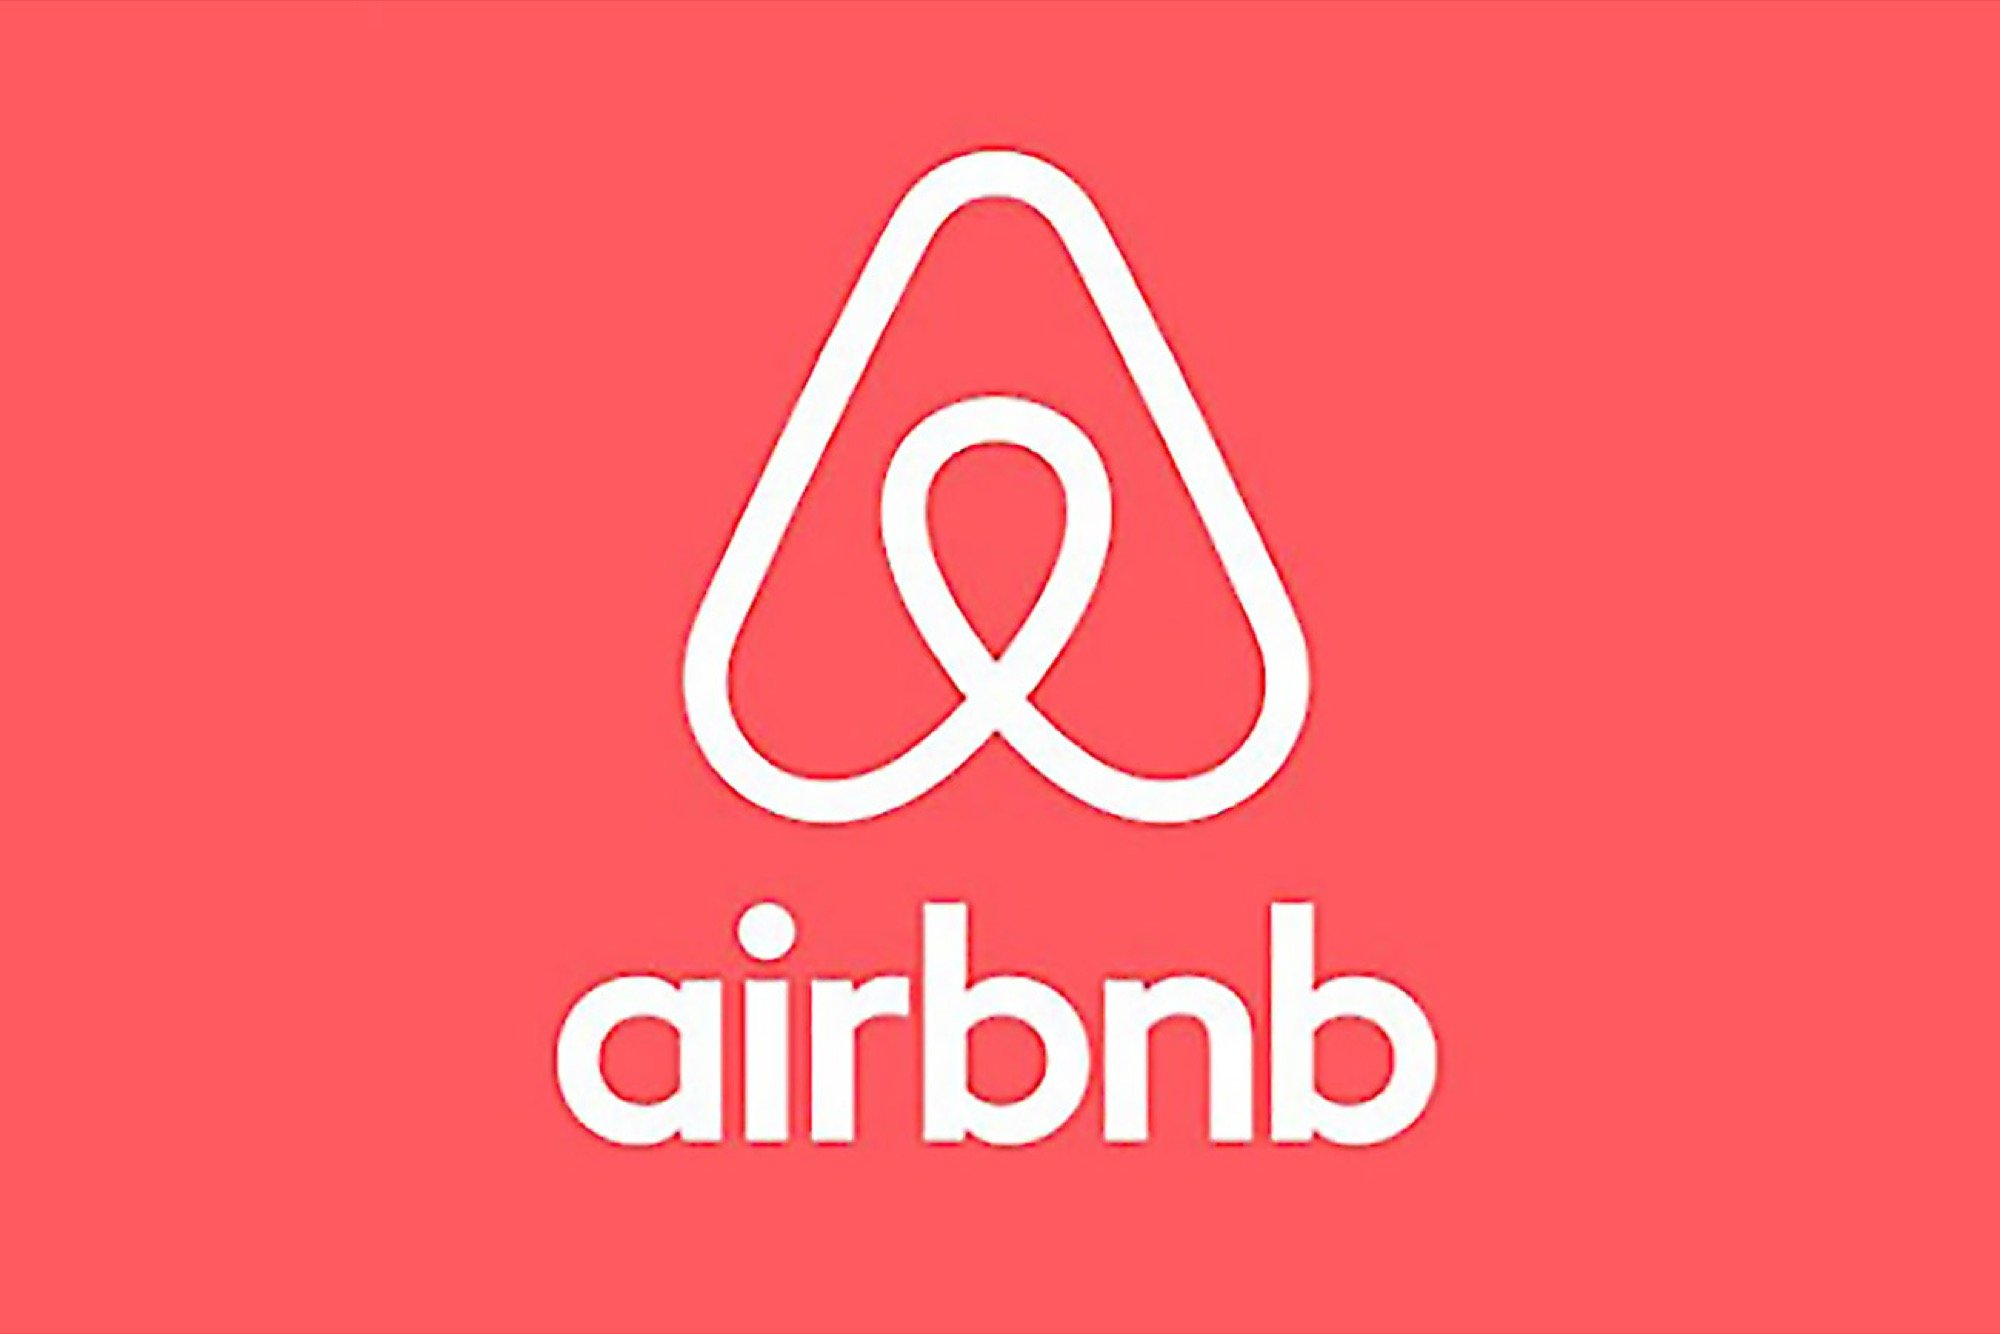 Airbnb   Vacation Rentals, Homes, Experiences & Places / Unforgettable trips start with Airbnb. Find adventures nearby or in faraway places and access unique homes, experiences, and places around the world.